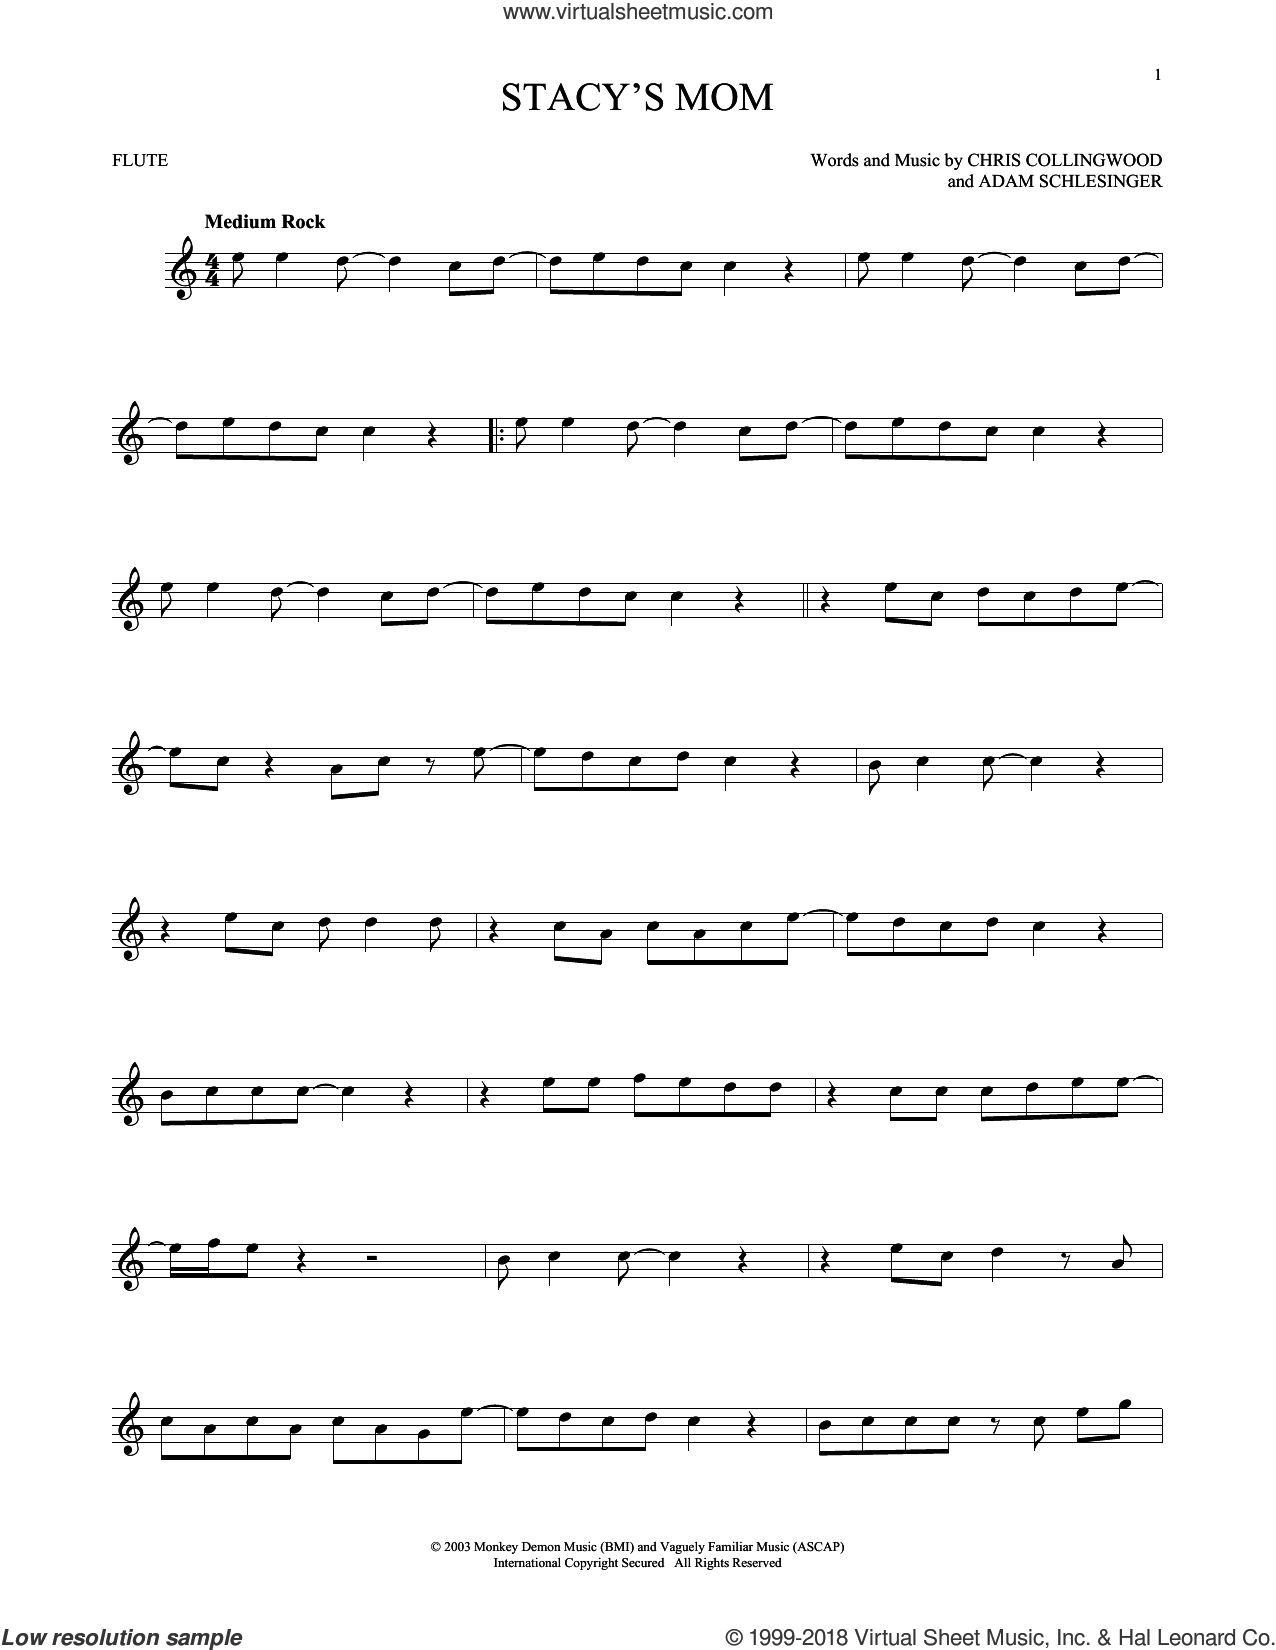 Stacy's Mom sheet music for flute solo by Fountains Of Wayne, Adam Schlesinger and Chris Collingwood, intermediate skill level